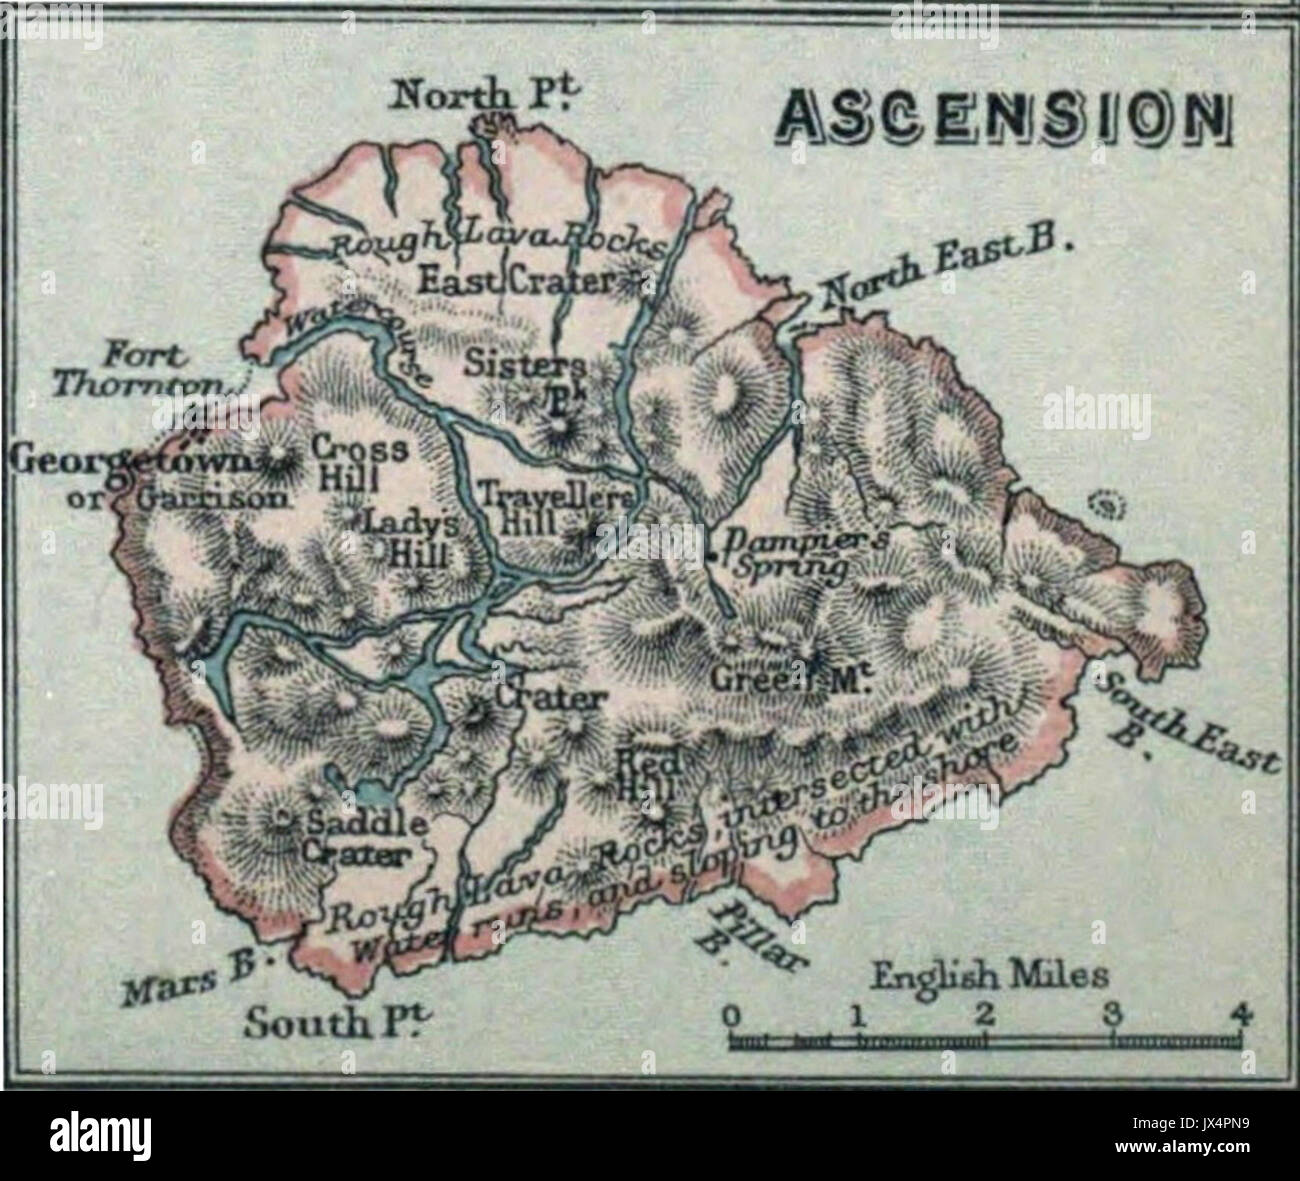 Ascension Island History Stock Photos Ascension Island History